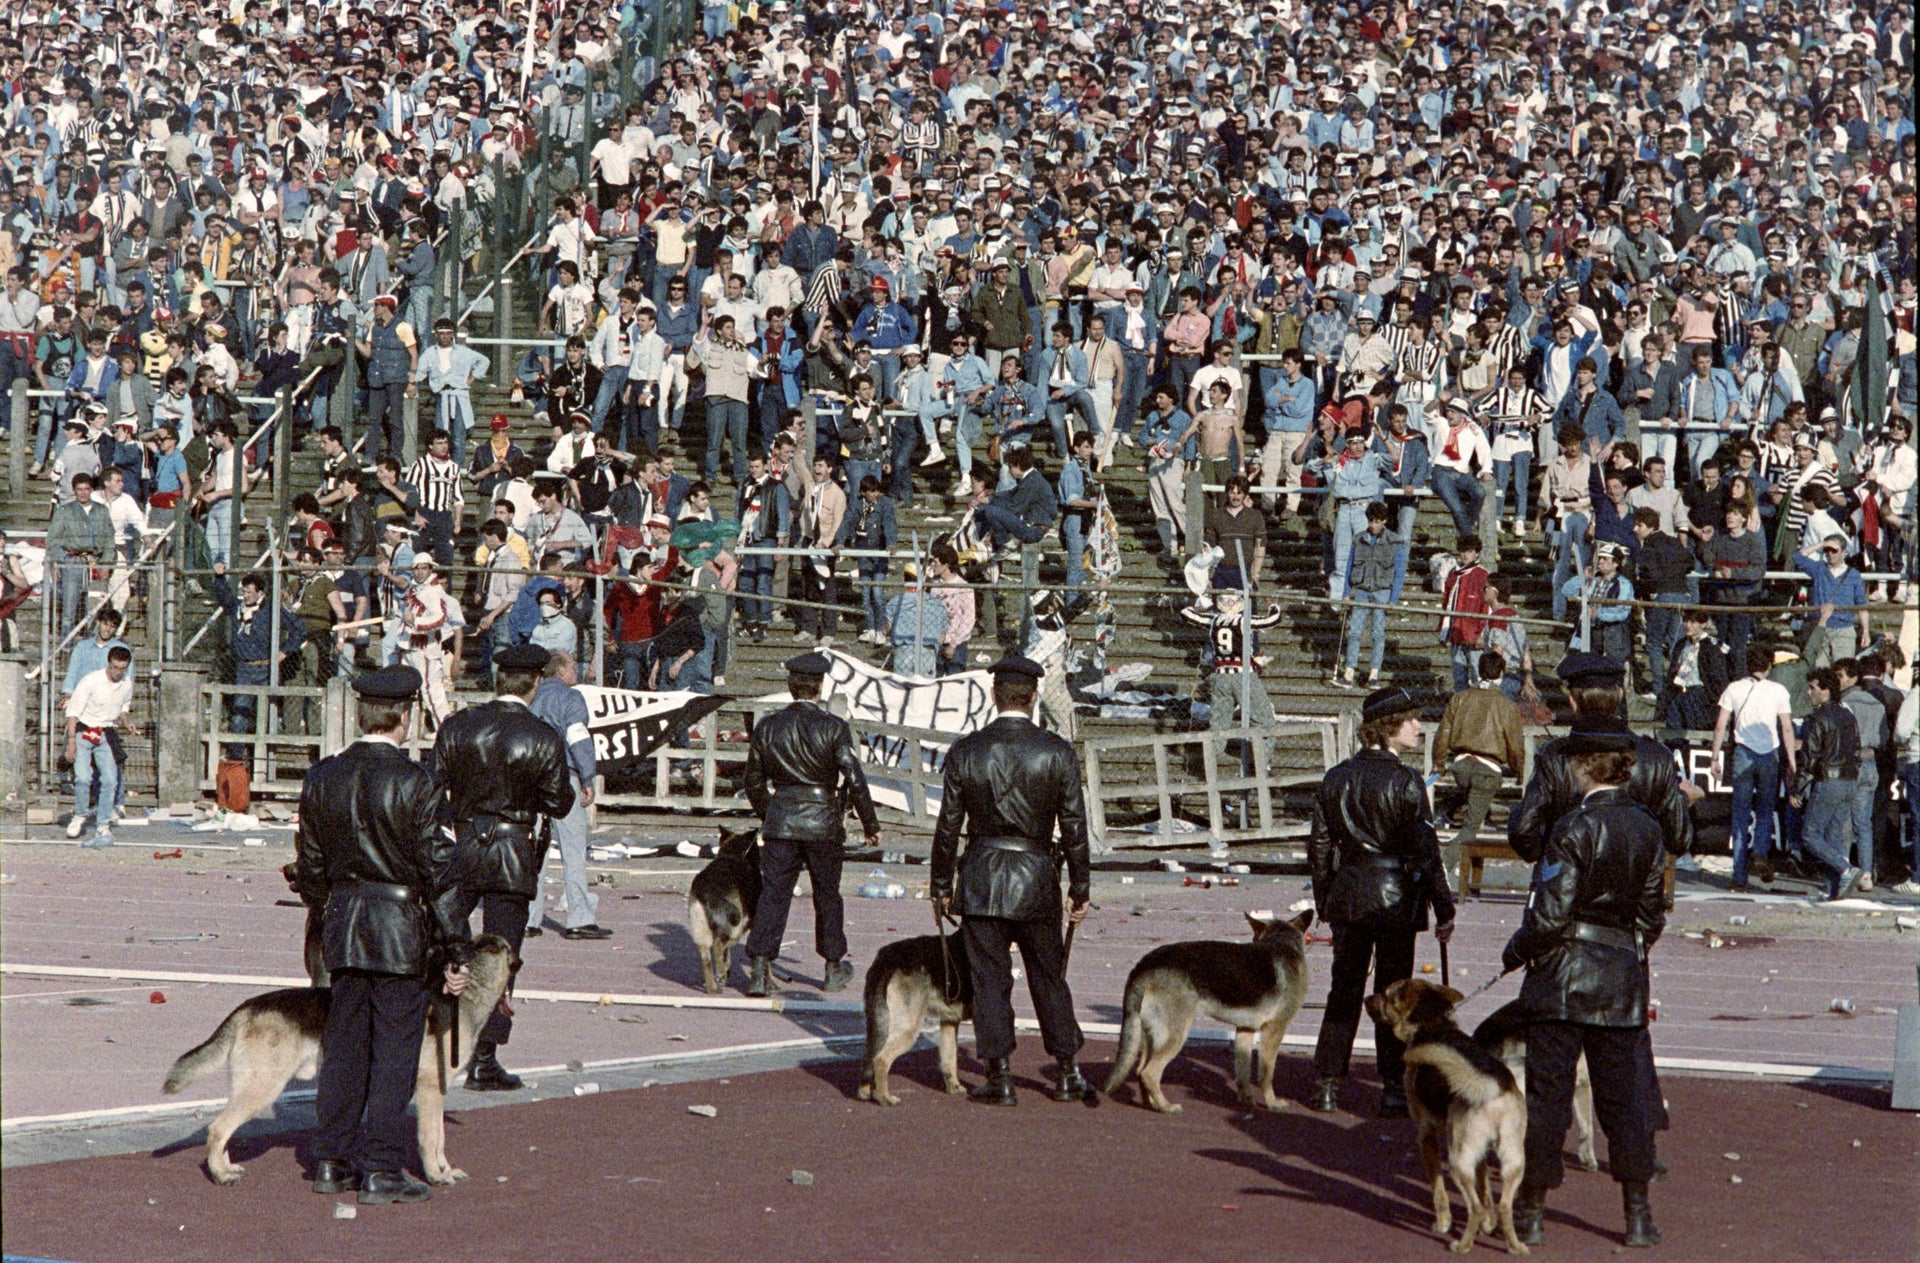 Belgium policemen with dogs face Italian fans, on May 29, 1985 in Heysel stadium in Brussels, as violence has broken out one hour before the European Champion Clubs final between Britain's Liverpool and Italy's Juventus of Turin